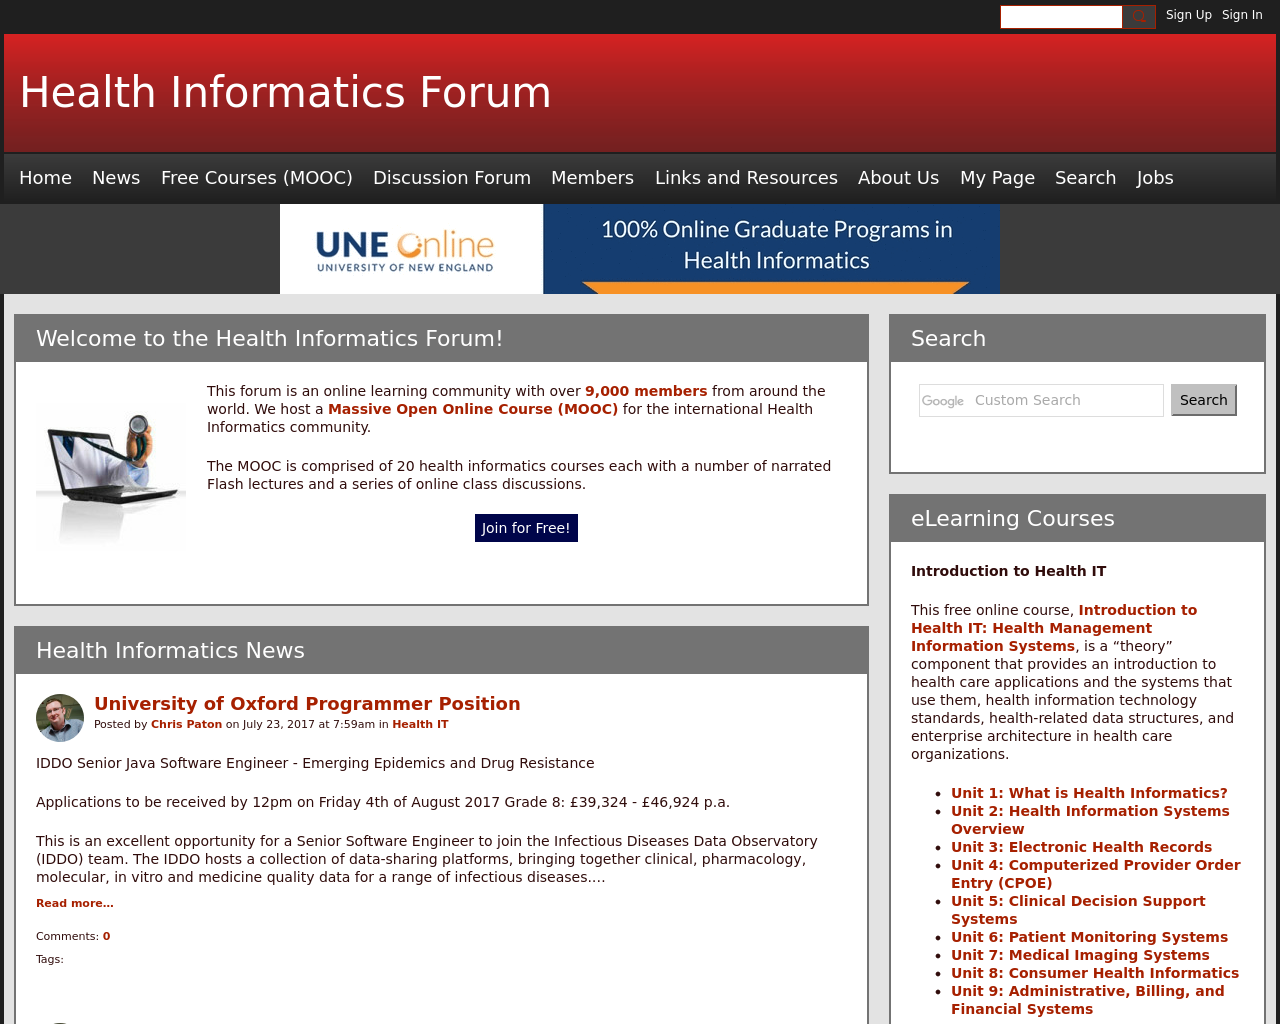 Health-Informatics-Forum-Advertising-Reviews-Pricing